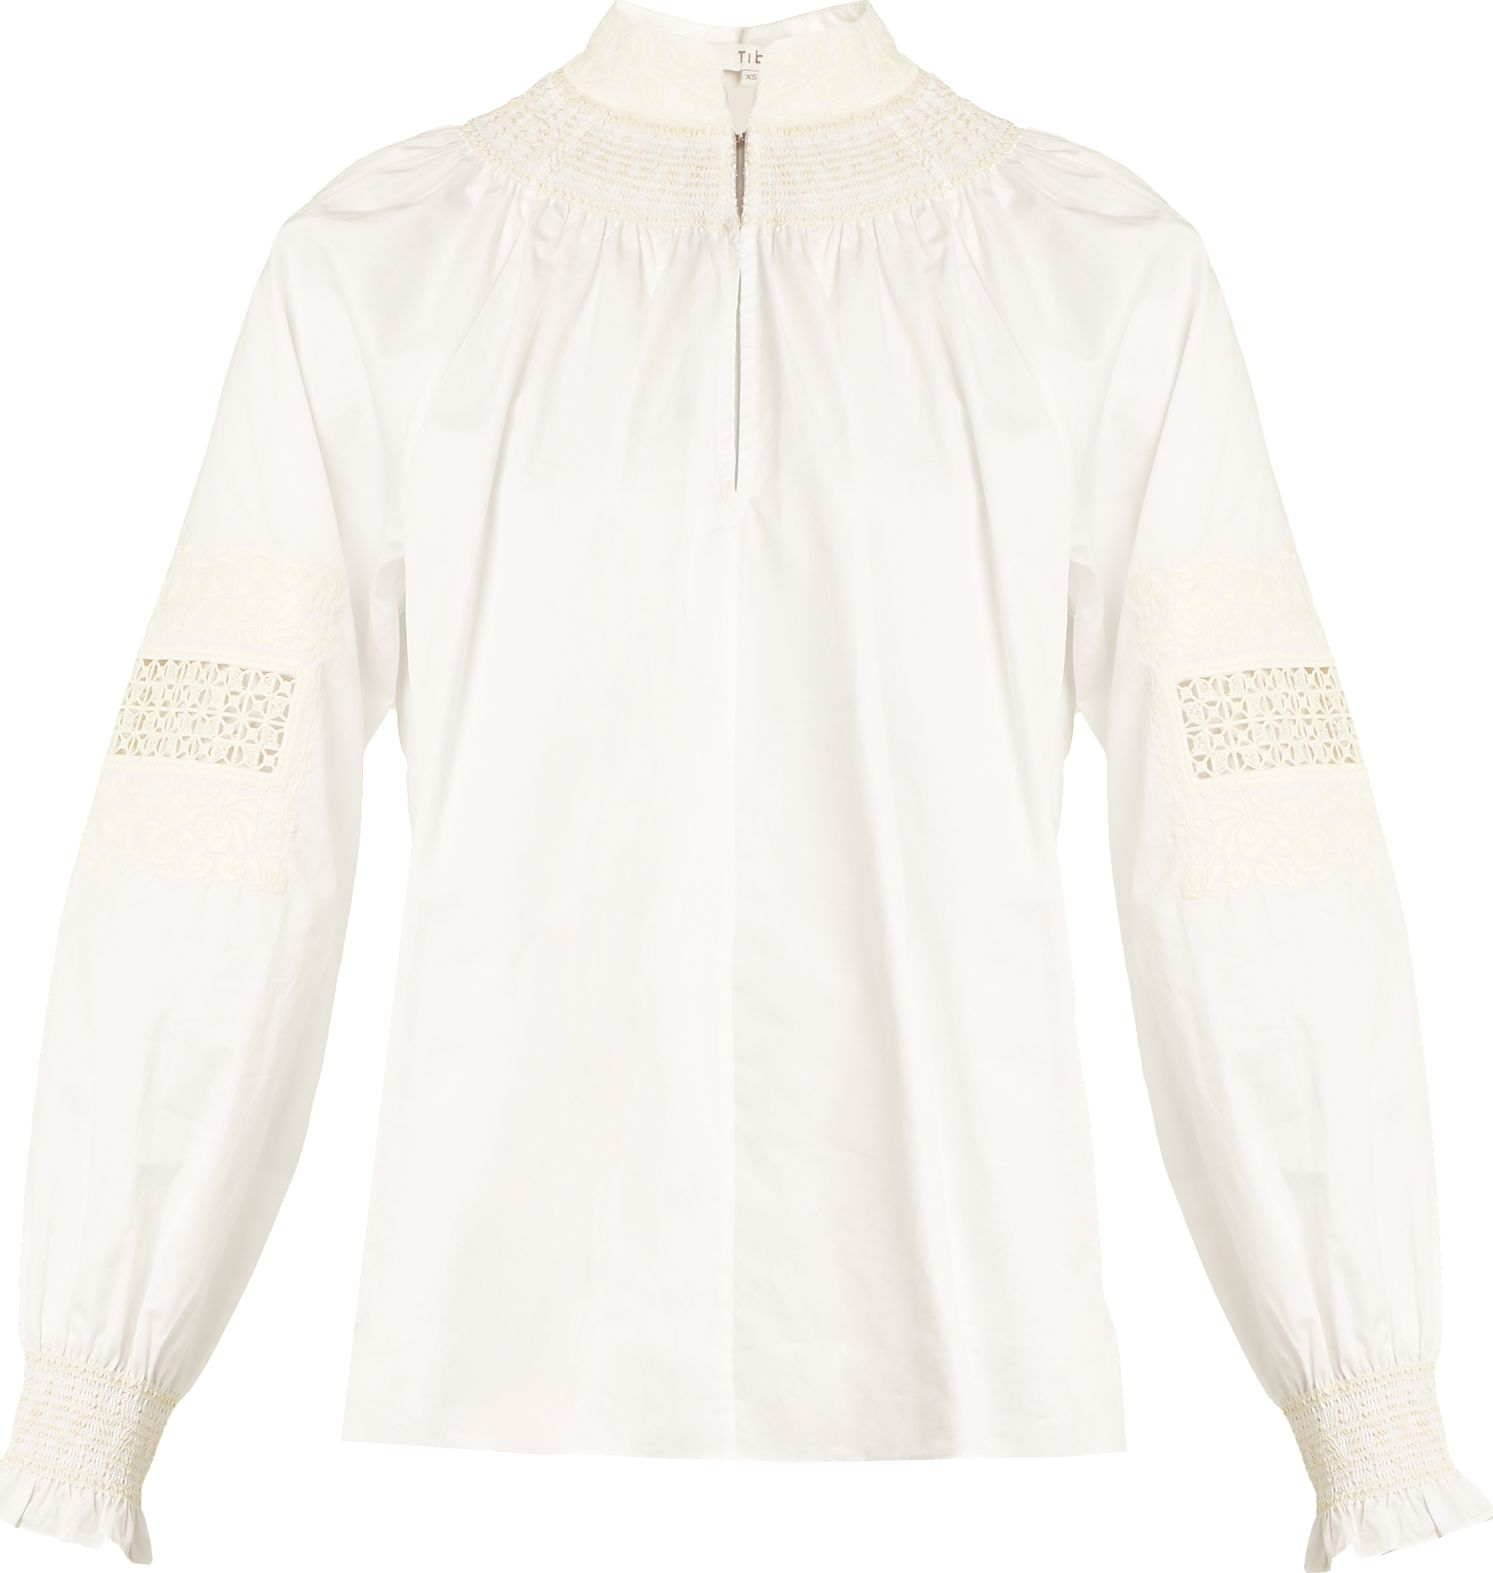 Tibi - Cora embroidered cotton top